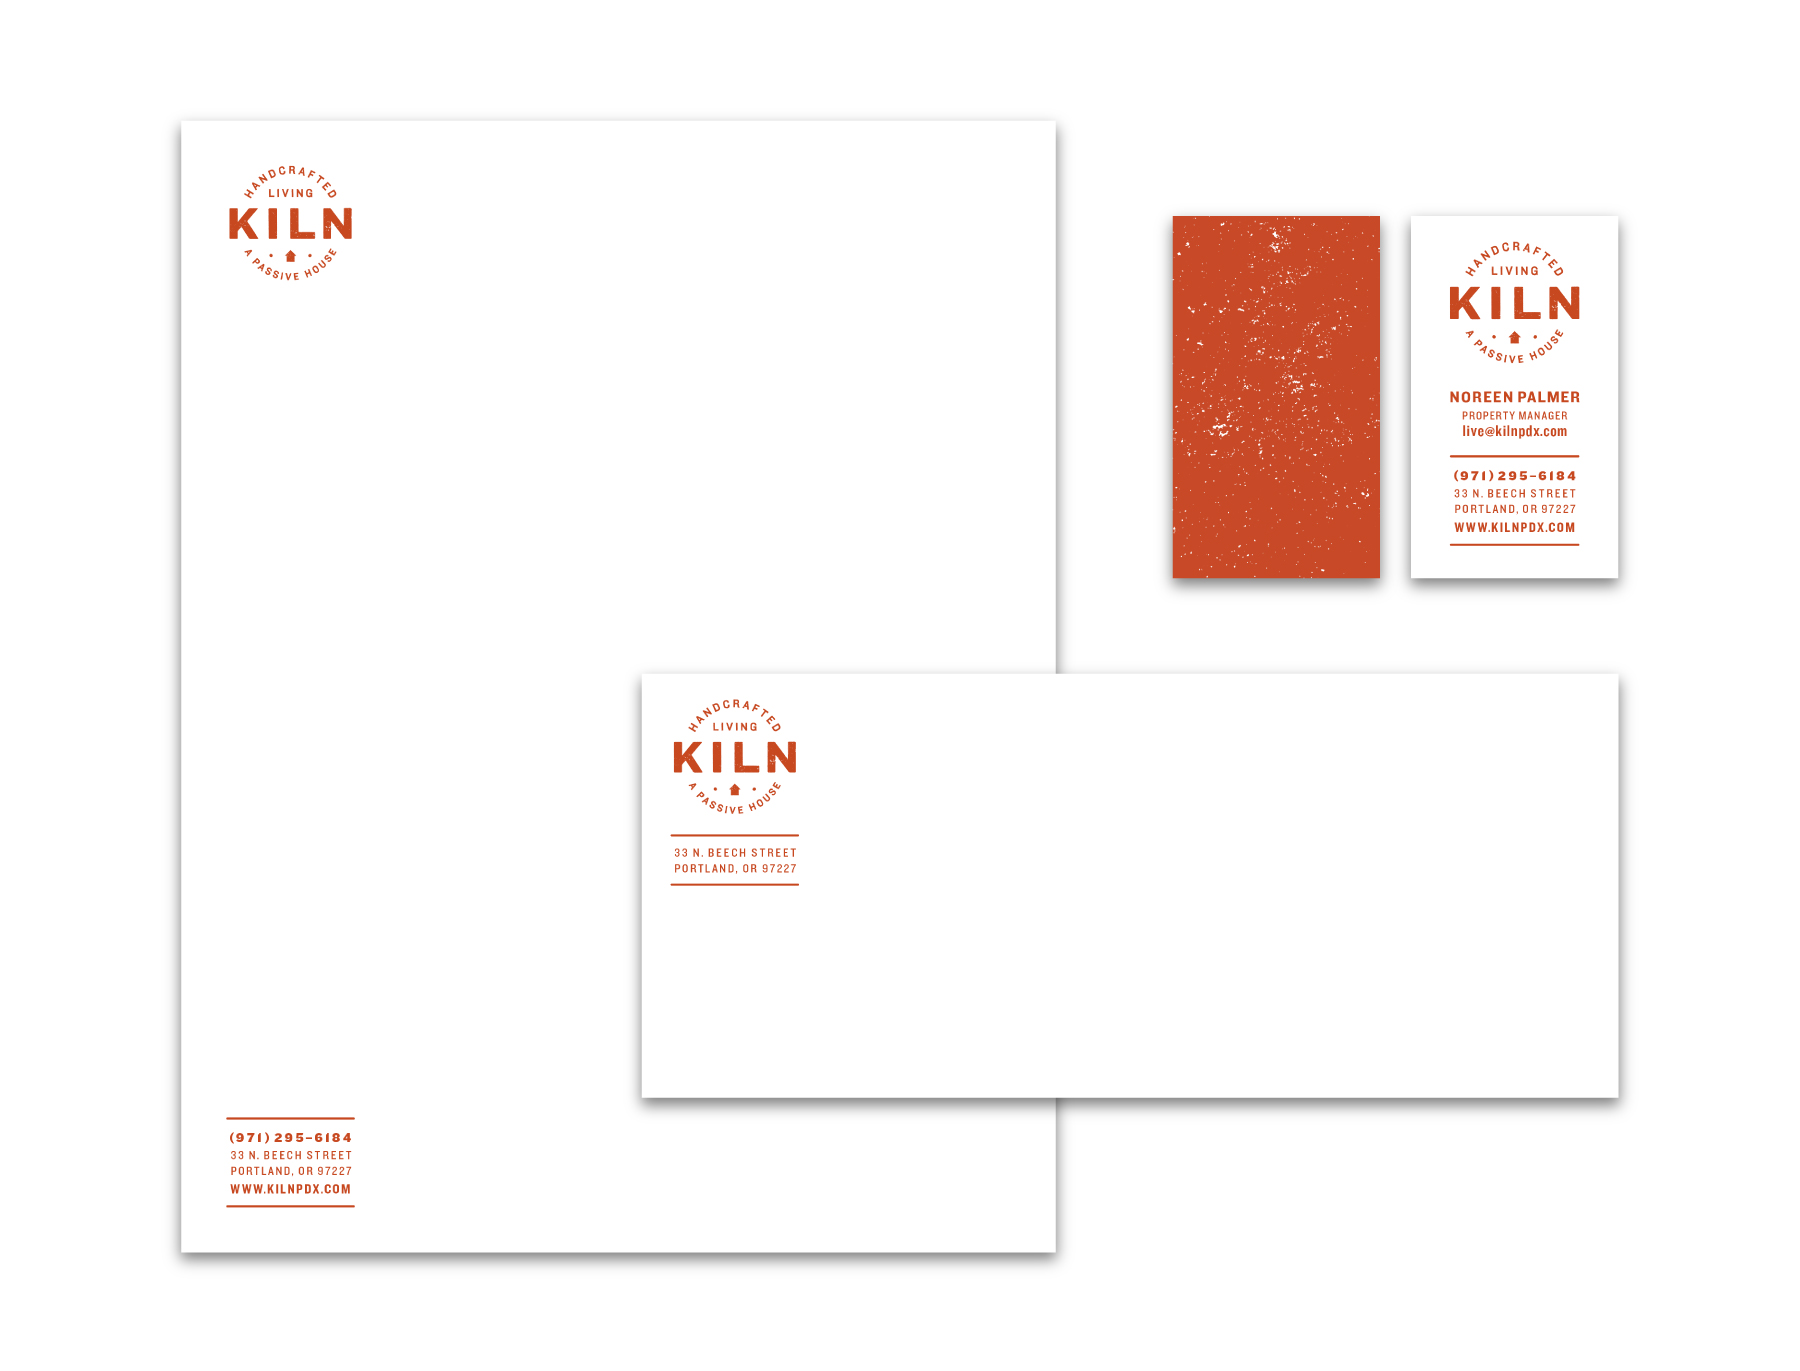 Kiln-Stationery.jpg